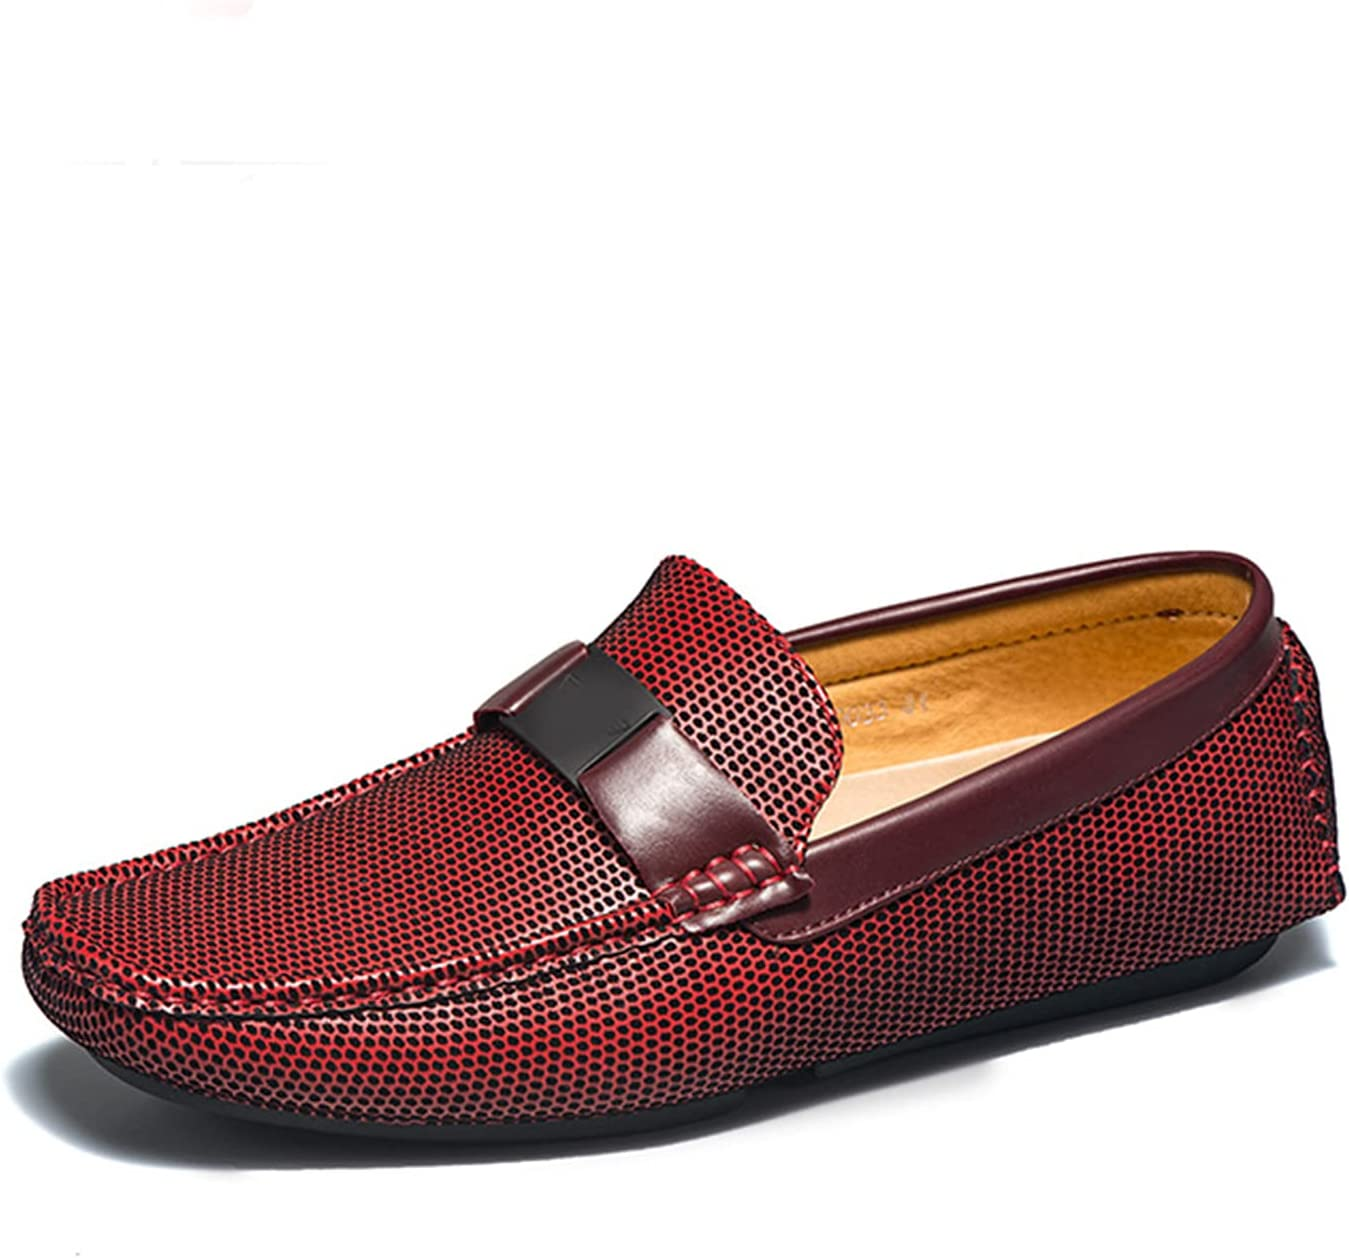 STVYtoy Men Shoes 2021 Spring Summer Autumn Fashion Loafers Shoes Men Classic Brand Leather Comfy Drive Boat Shoes,E,42